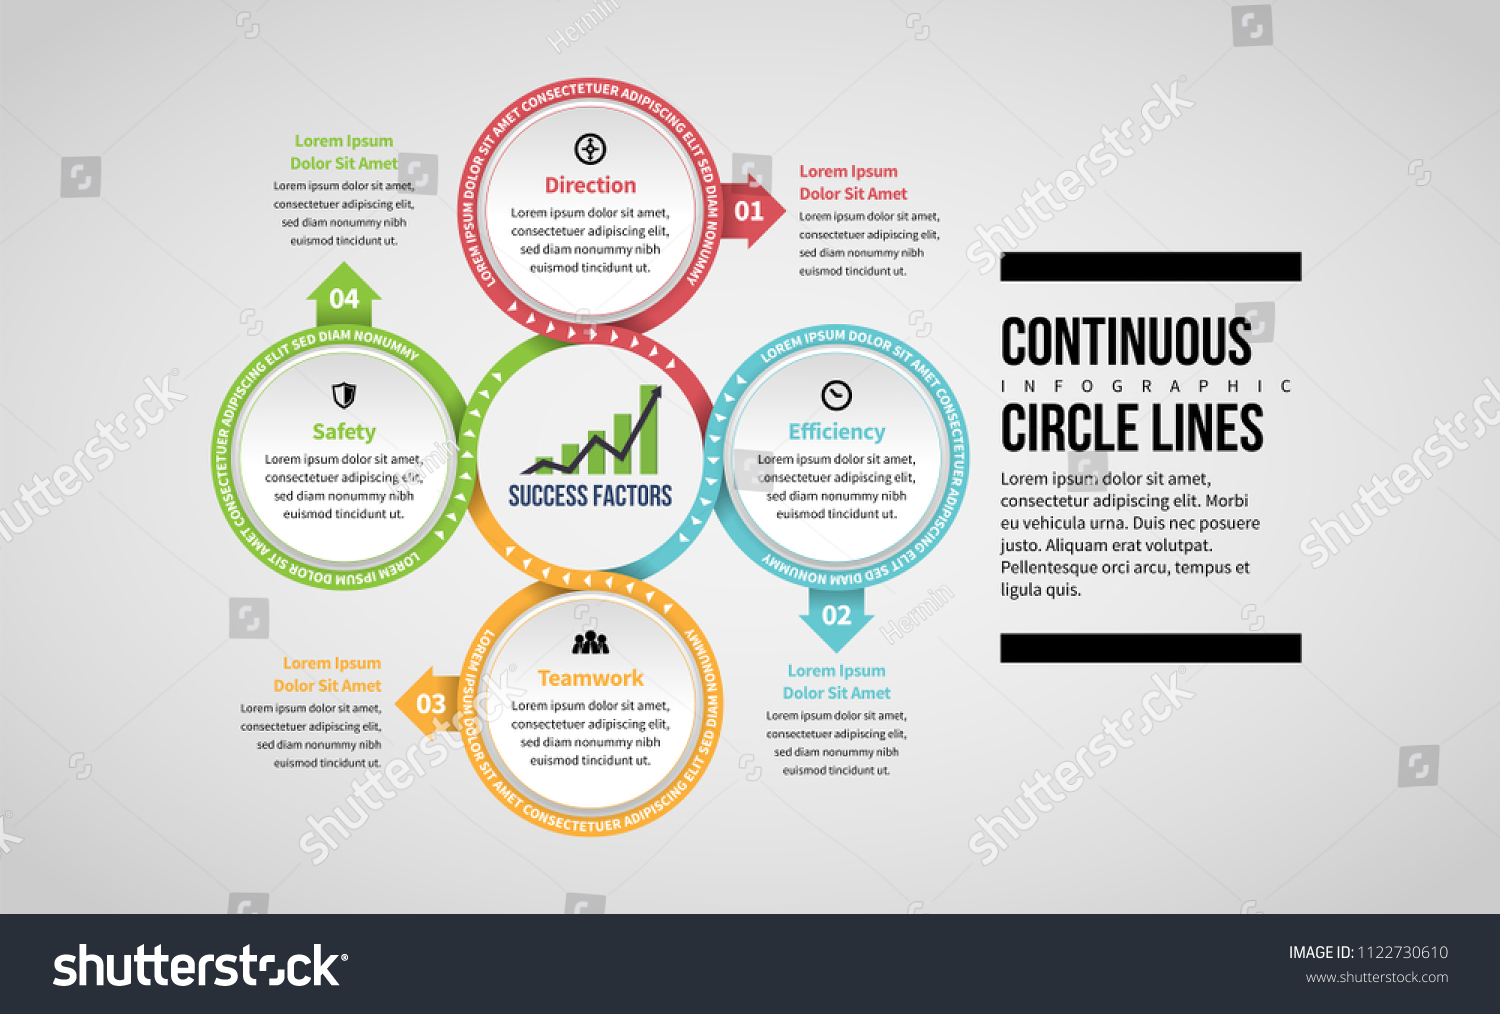 hight resolution of vector illustration of continuous circle lines infographic design element